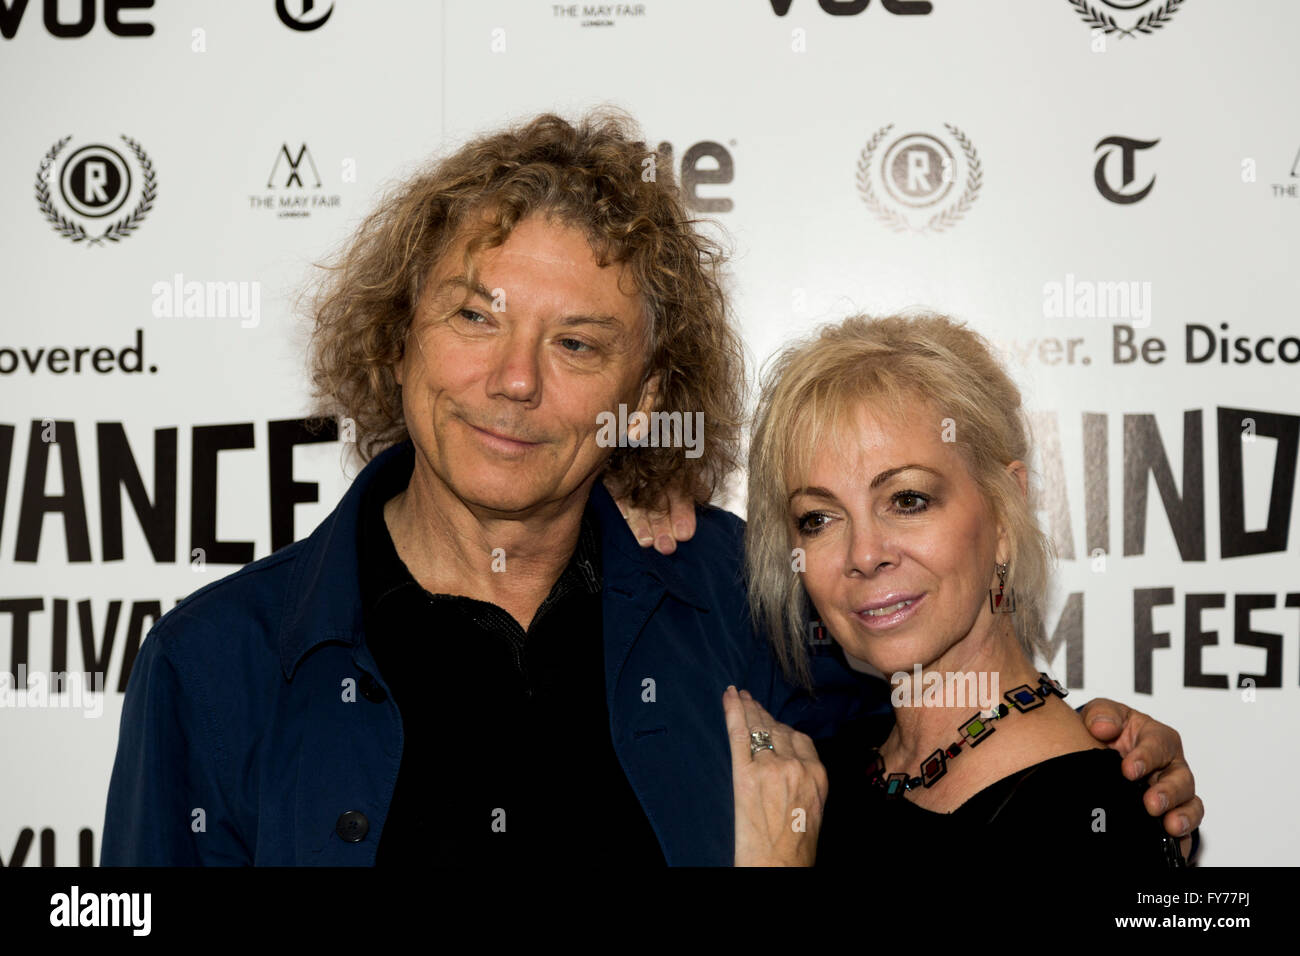 UK Premiere of Take Me To The River at the 22nd annual Raindance Film Festival in Vue Piccadilly, London. - Stock Image